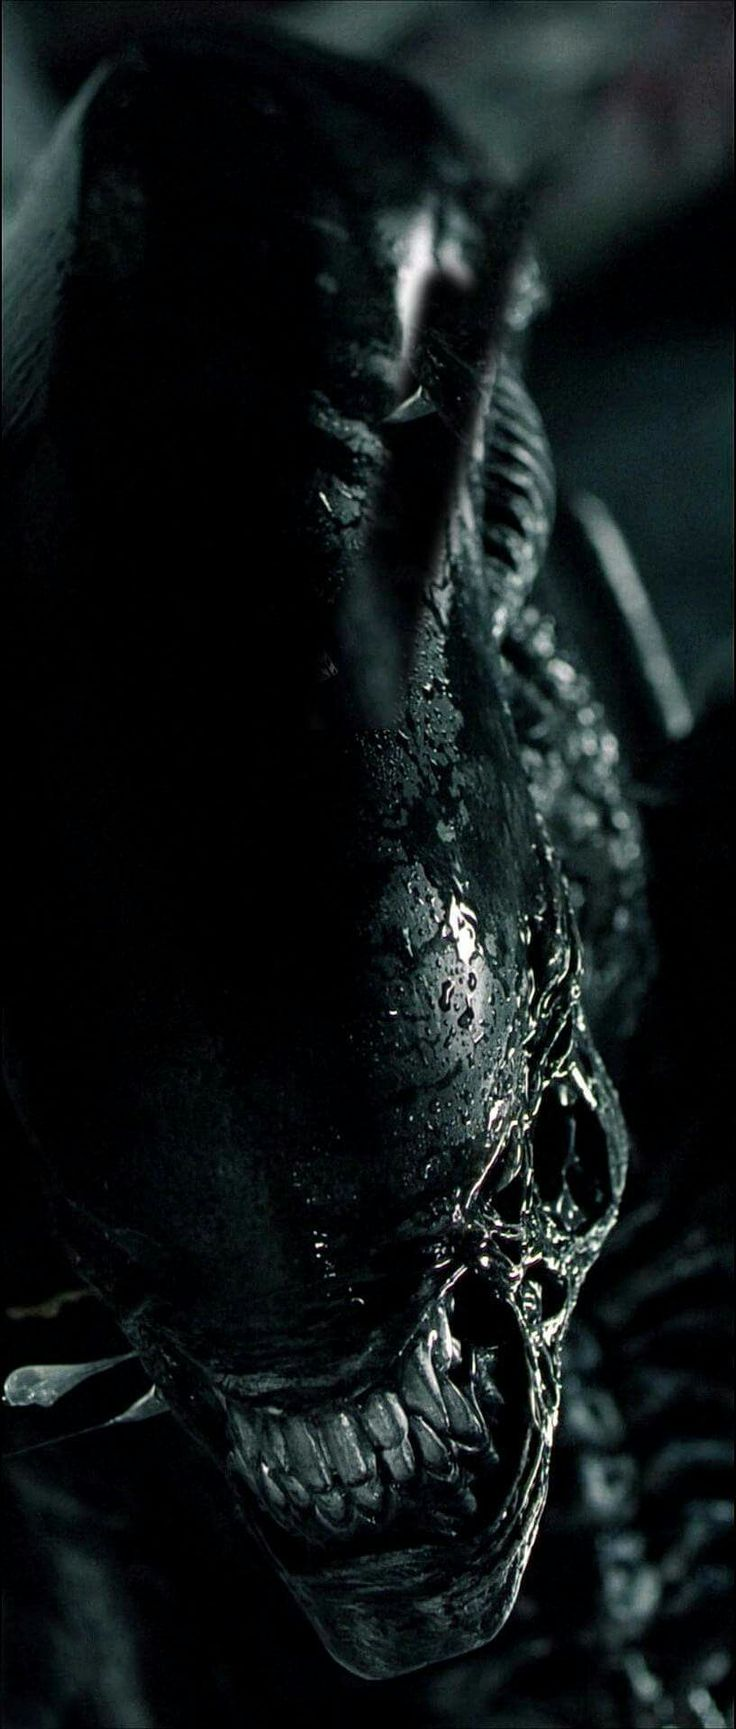 Xenomorph - The original H. R. Giger Alien. Some of the best movies of all time.